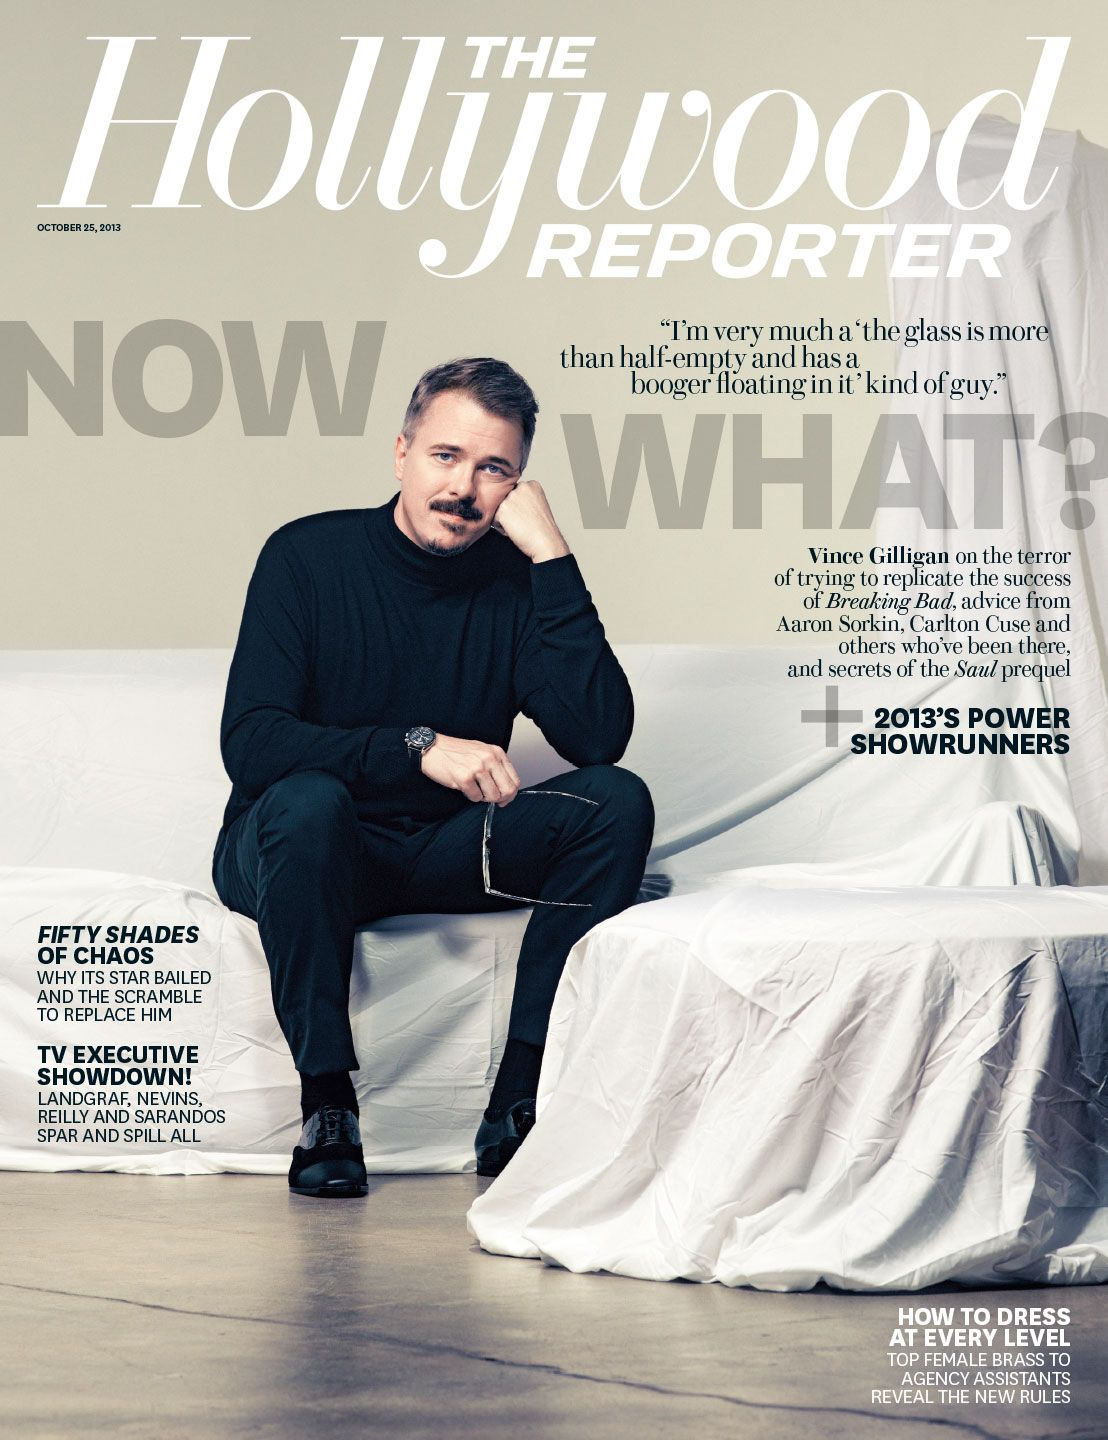 'Breaking Bad's' Vince Gilligan Reveals Details of 'Saul' Spinoff and Terror Over What's Next - The Hollywood Reporter